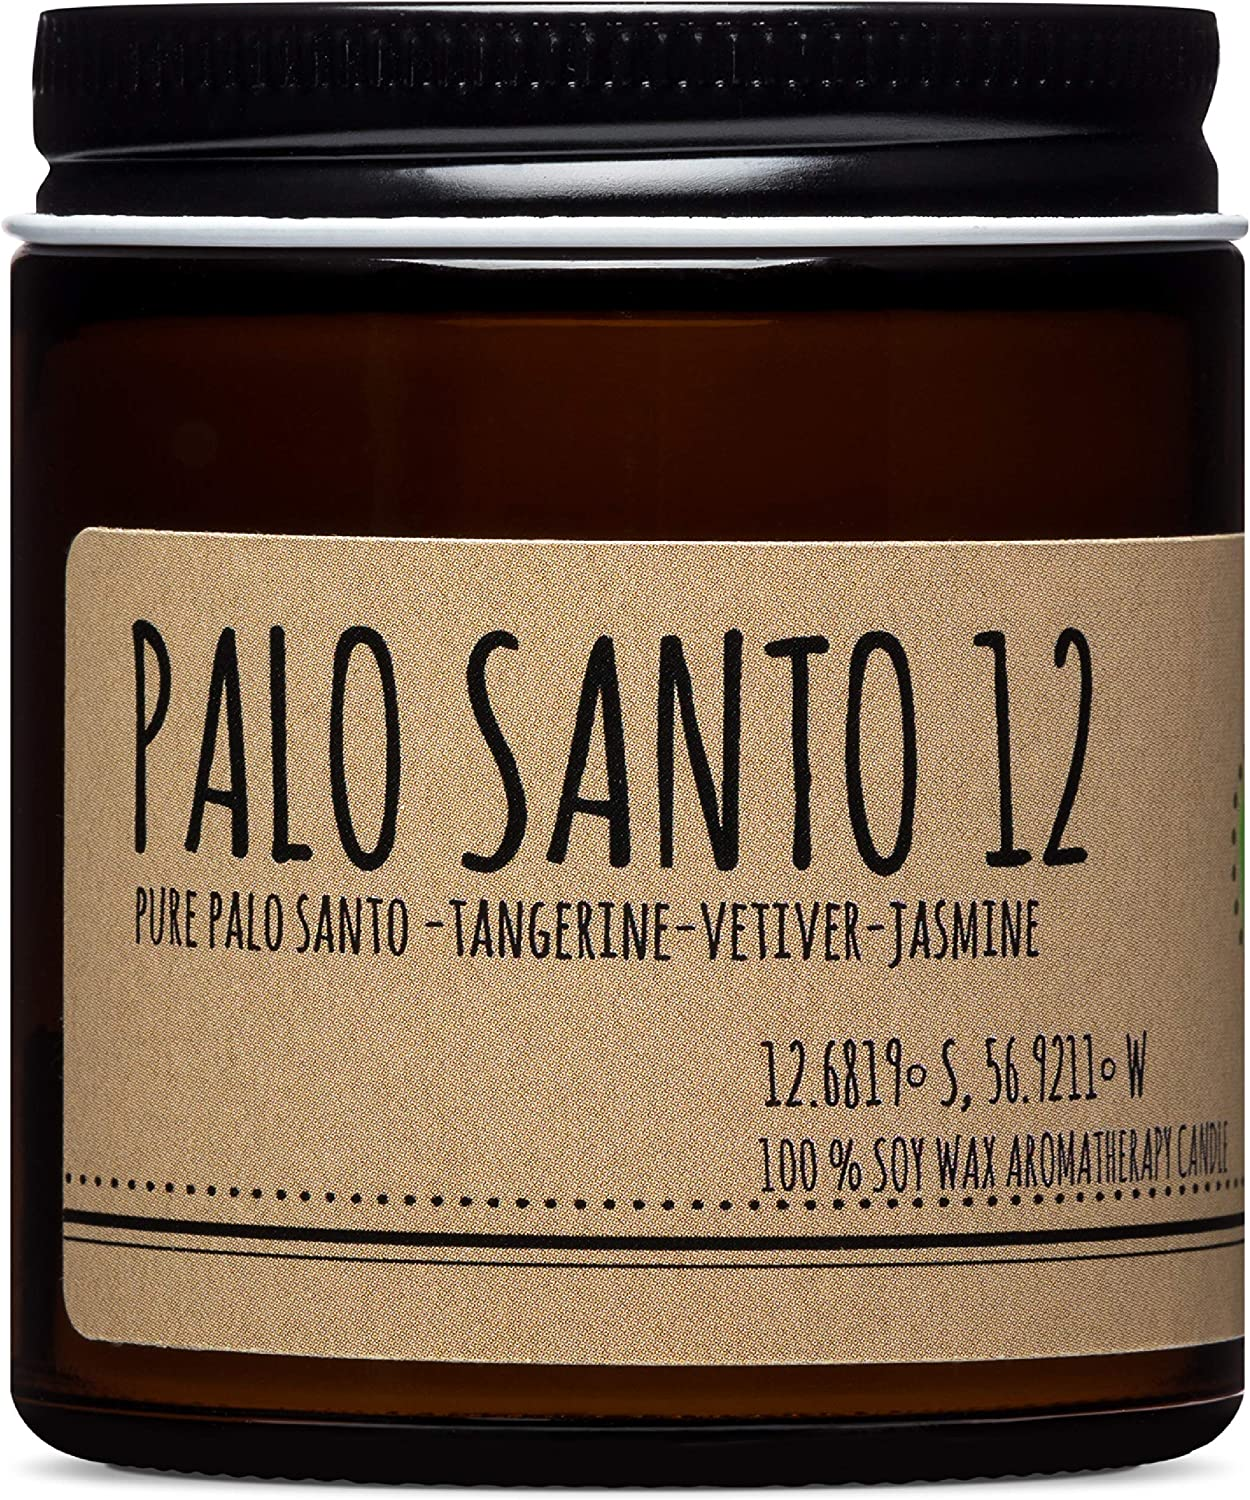 Maison Palo Santo Soy Wax Candle - Palo Santo, Tangerine, Vetiver and Jasmine Natural Scented Candle for Aromatherapy, Negative Energy Cleansing, Chakra Balancing and Meditation, 4 oz